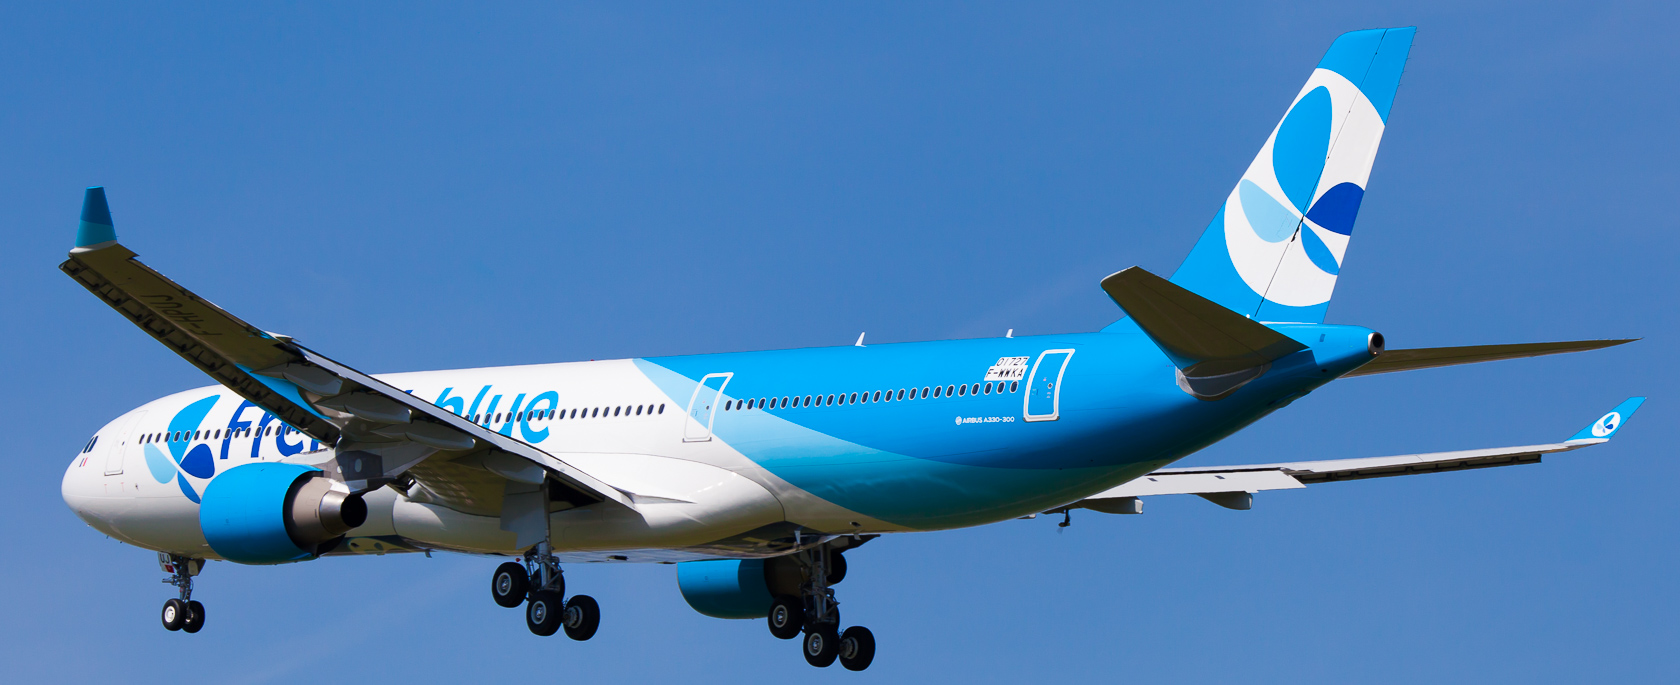 Frenchblue Airbus A330-323 cn 1727 F-WWKA // F-HPUJ